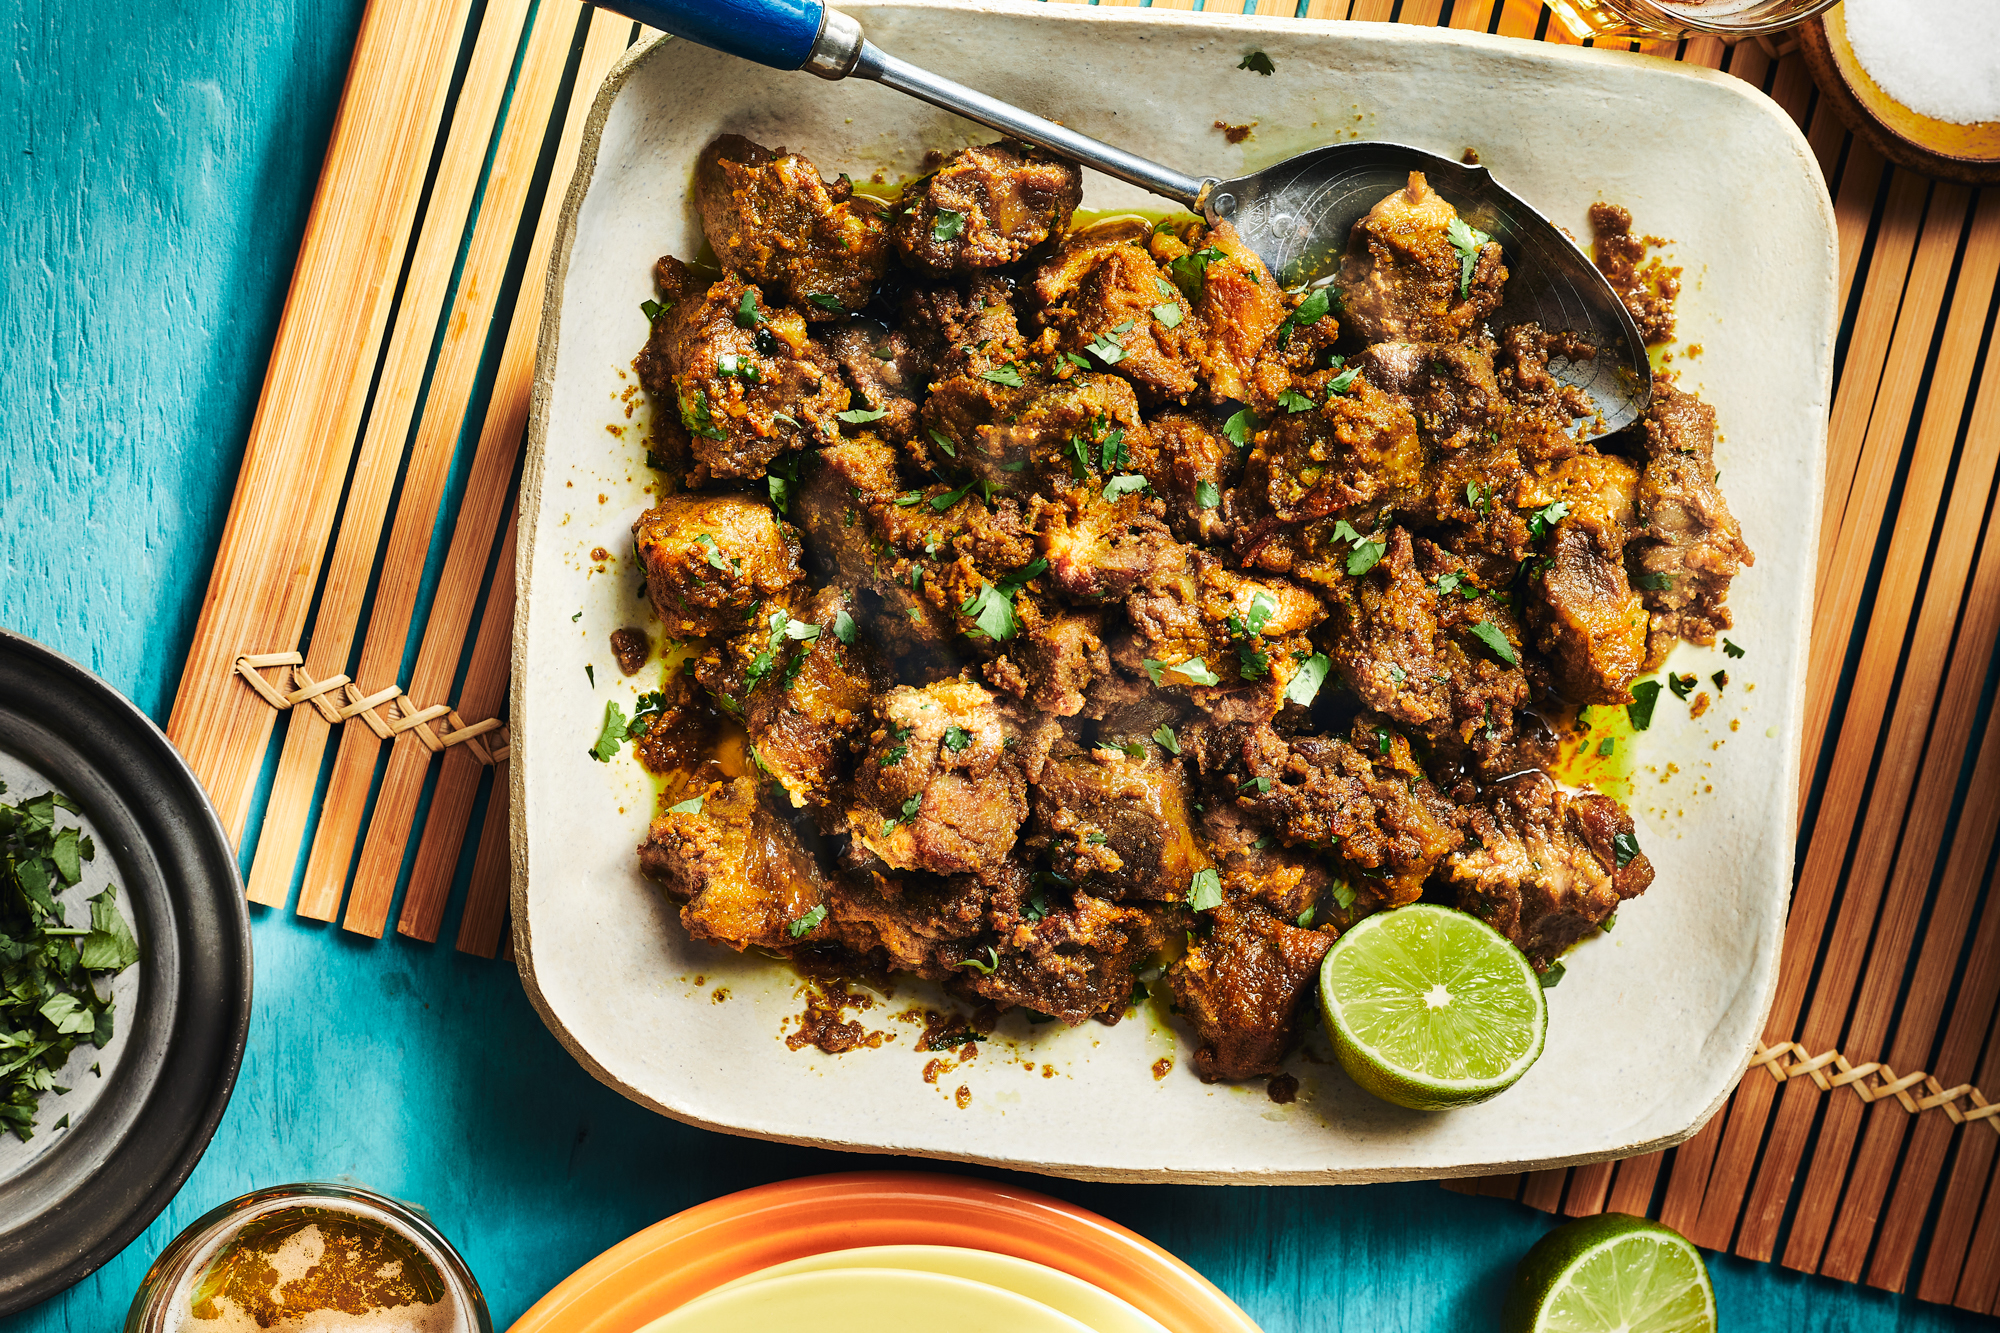 Spicy Cumin-Braised Pork